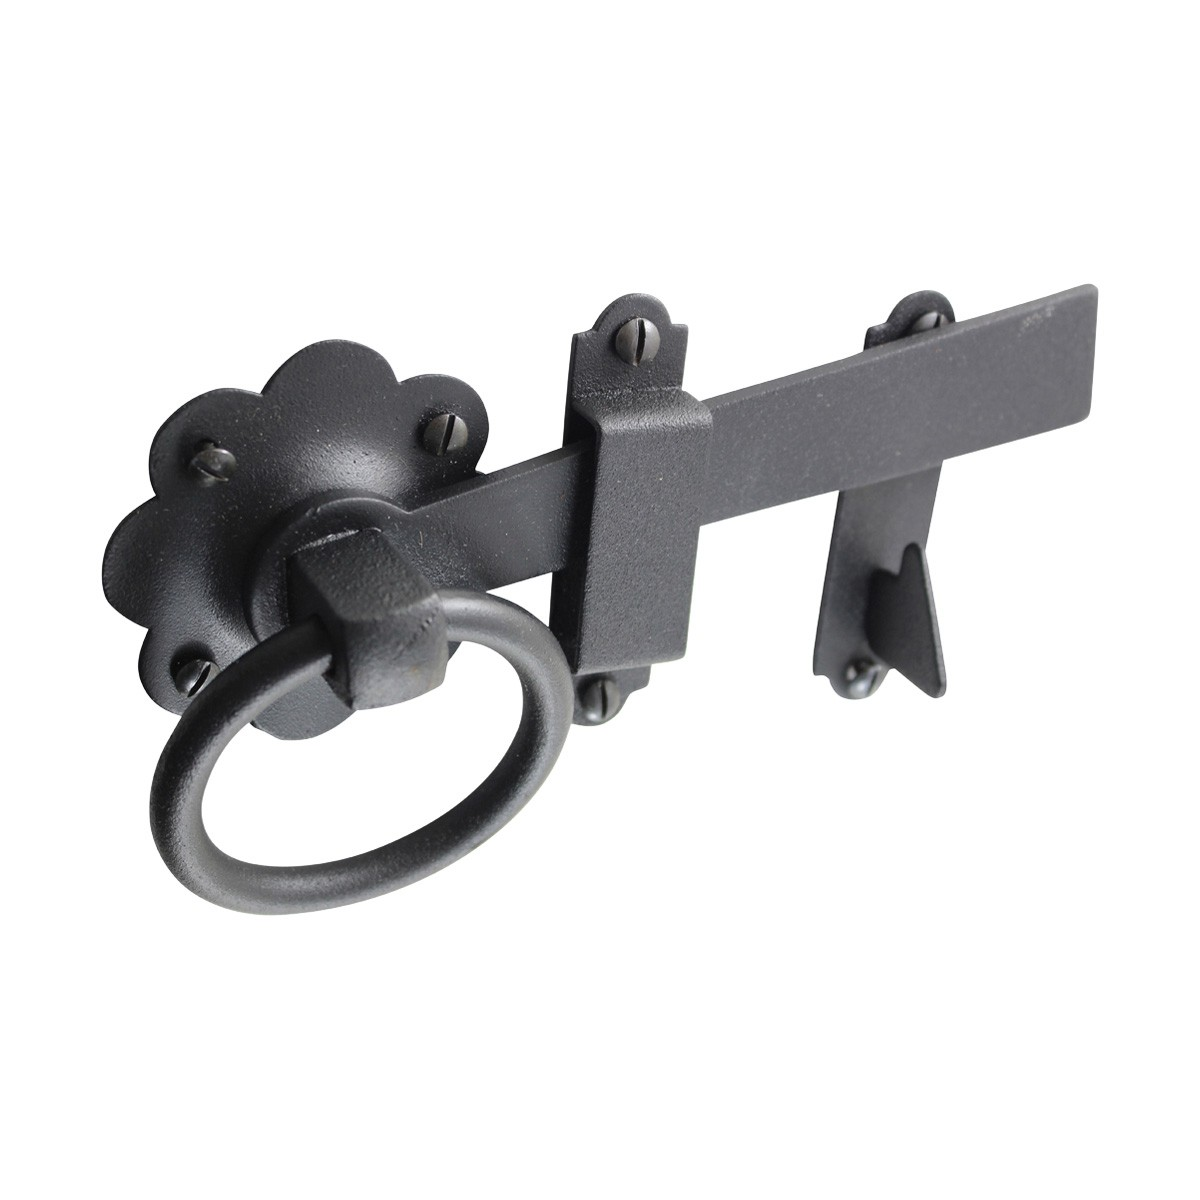 Floral Gate Latch Wrought Iron Heavy Duty Rustproof Finish 7 in W Gate Latch Rust Proof Wrought Iron Gate Latch Backyard Gate Latch